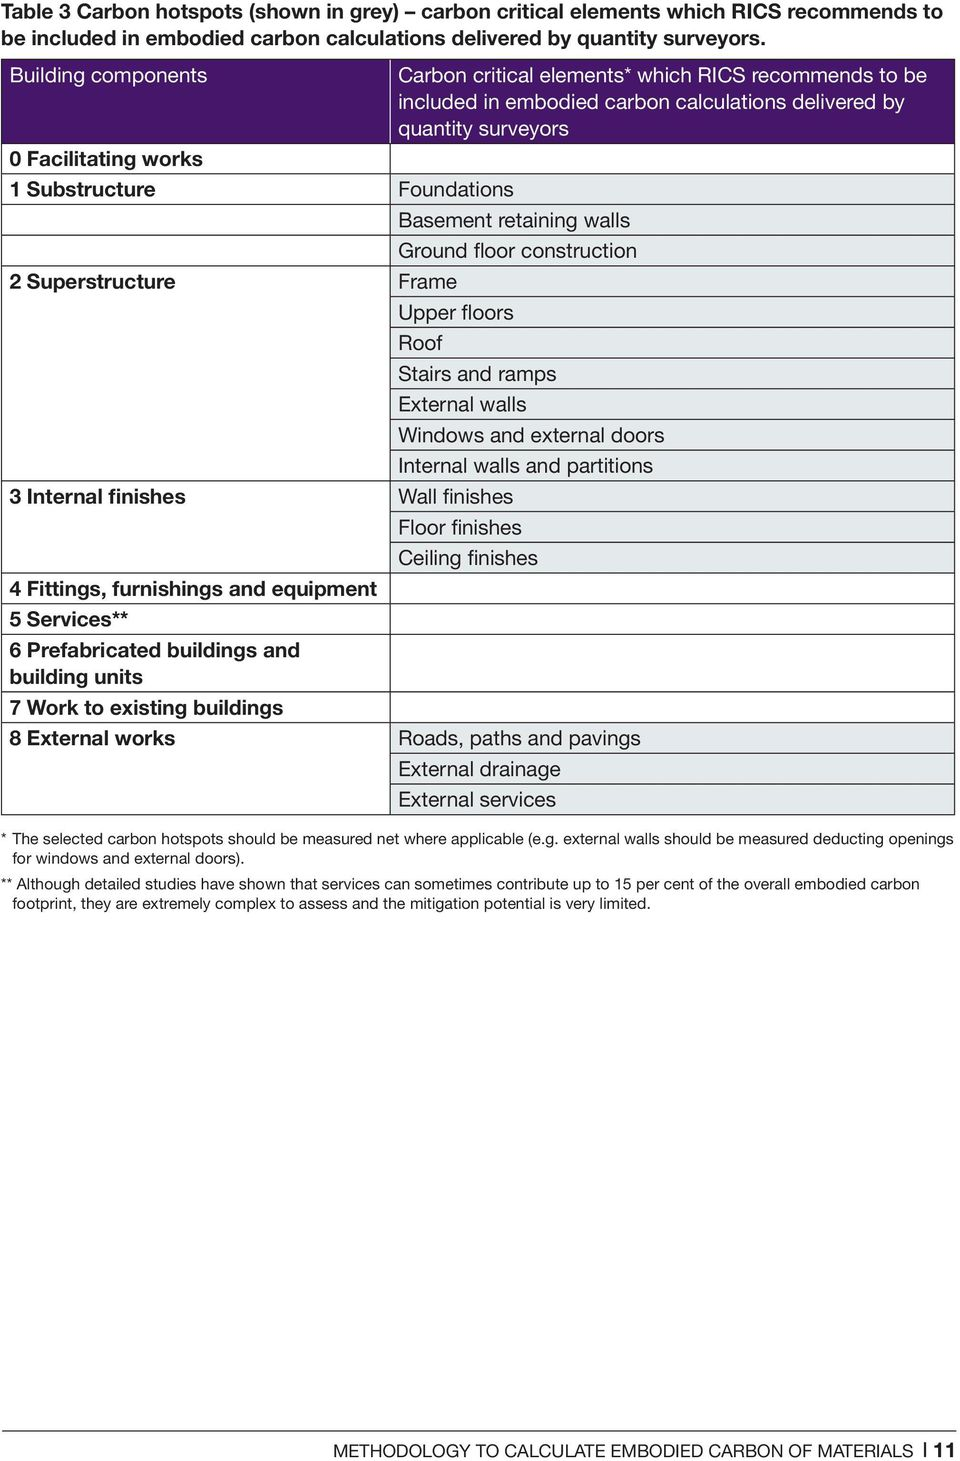 Methodology to calculate embodied carbon of materials - PDF